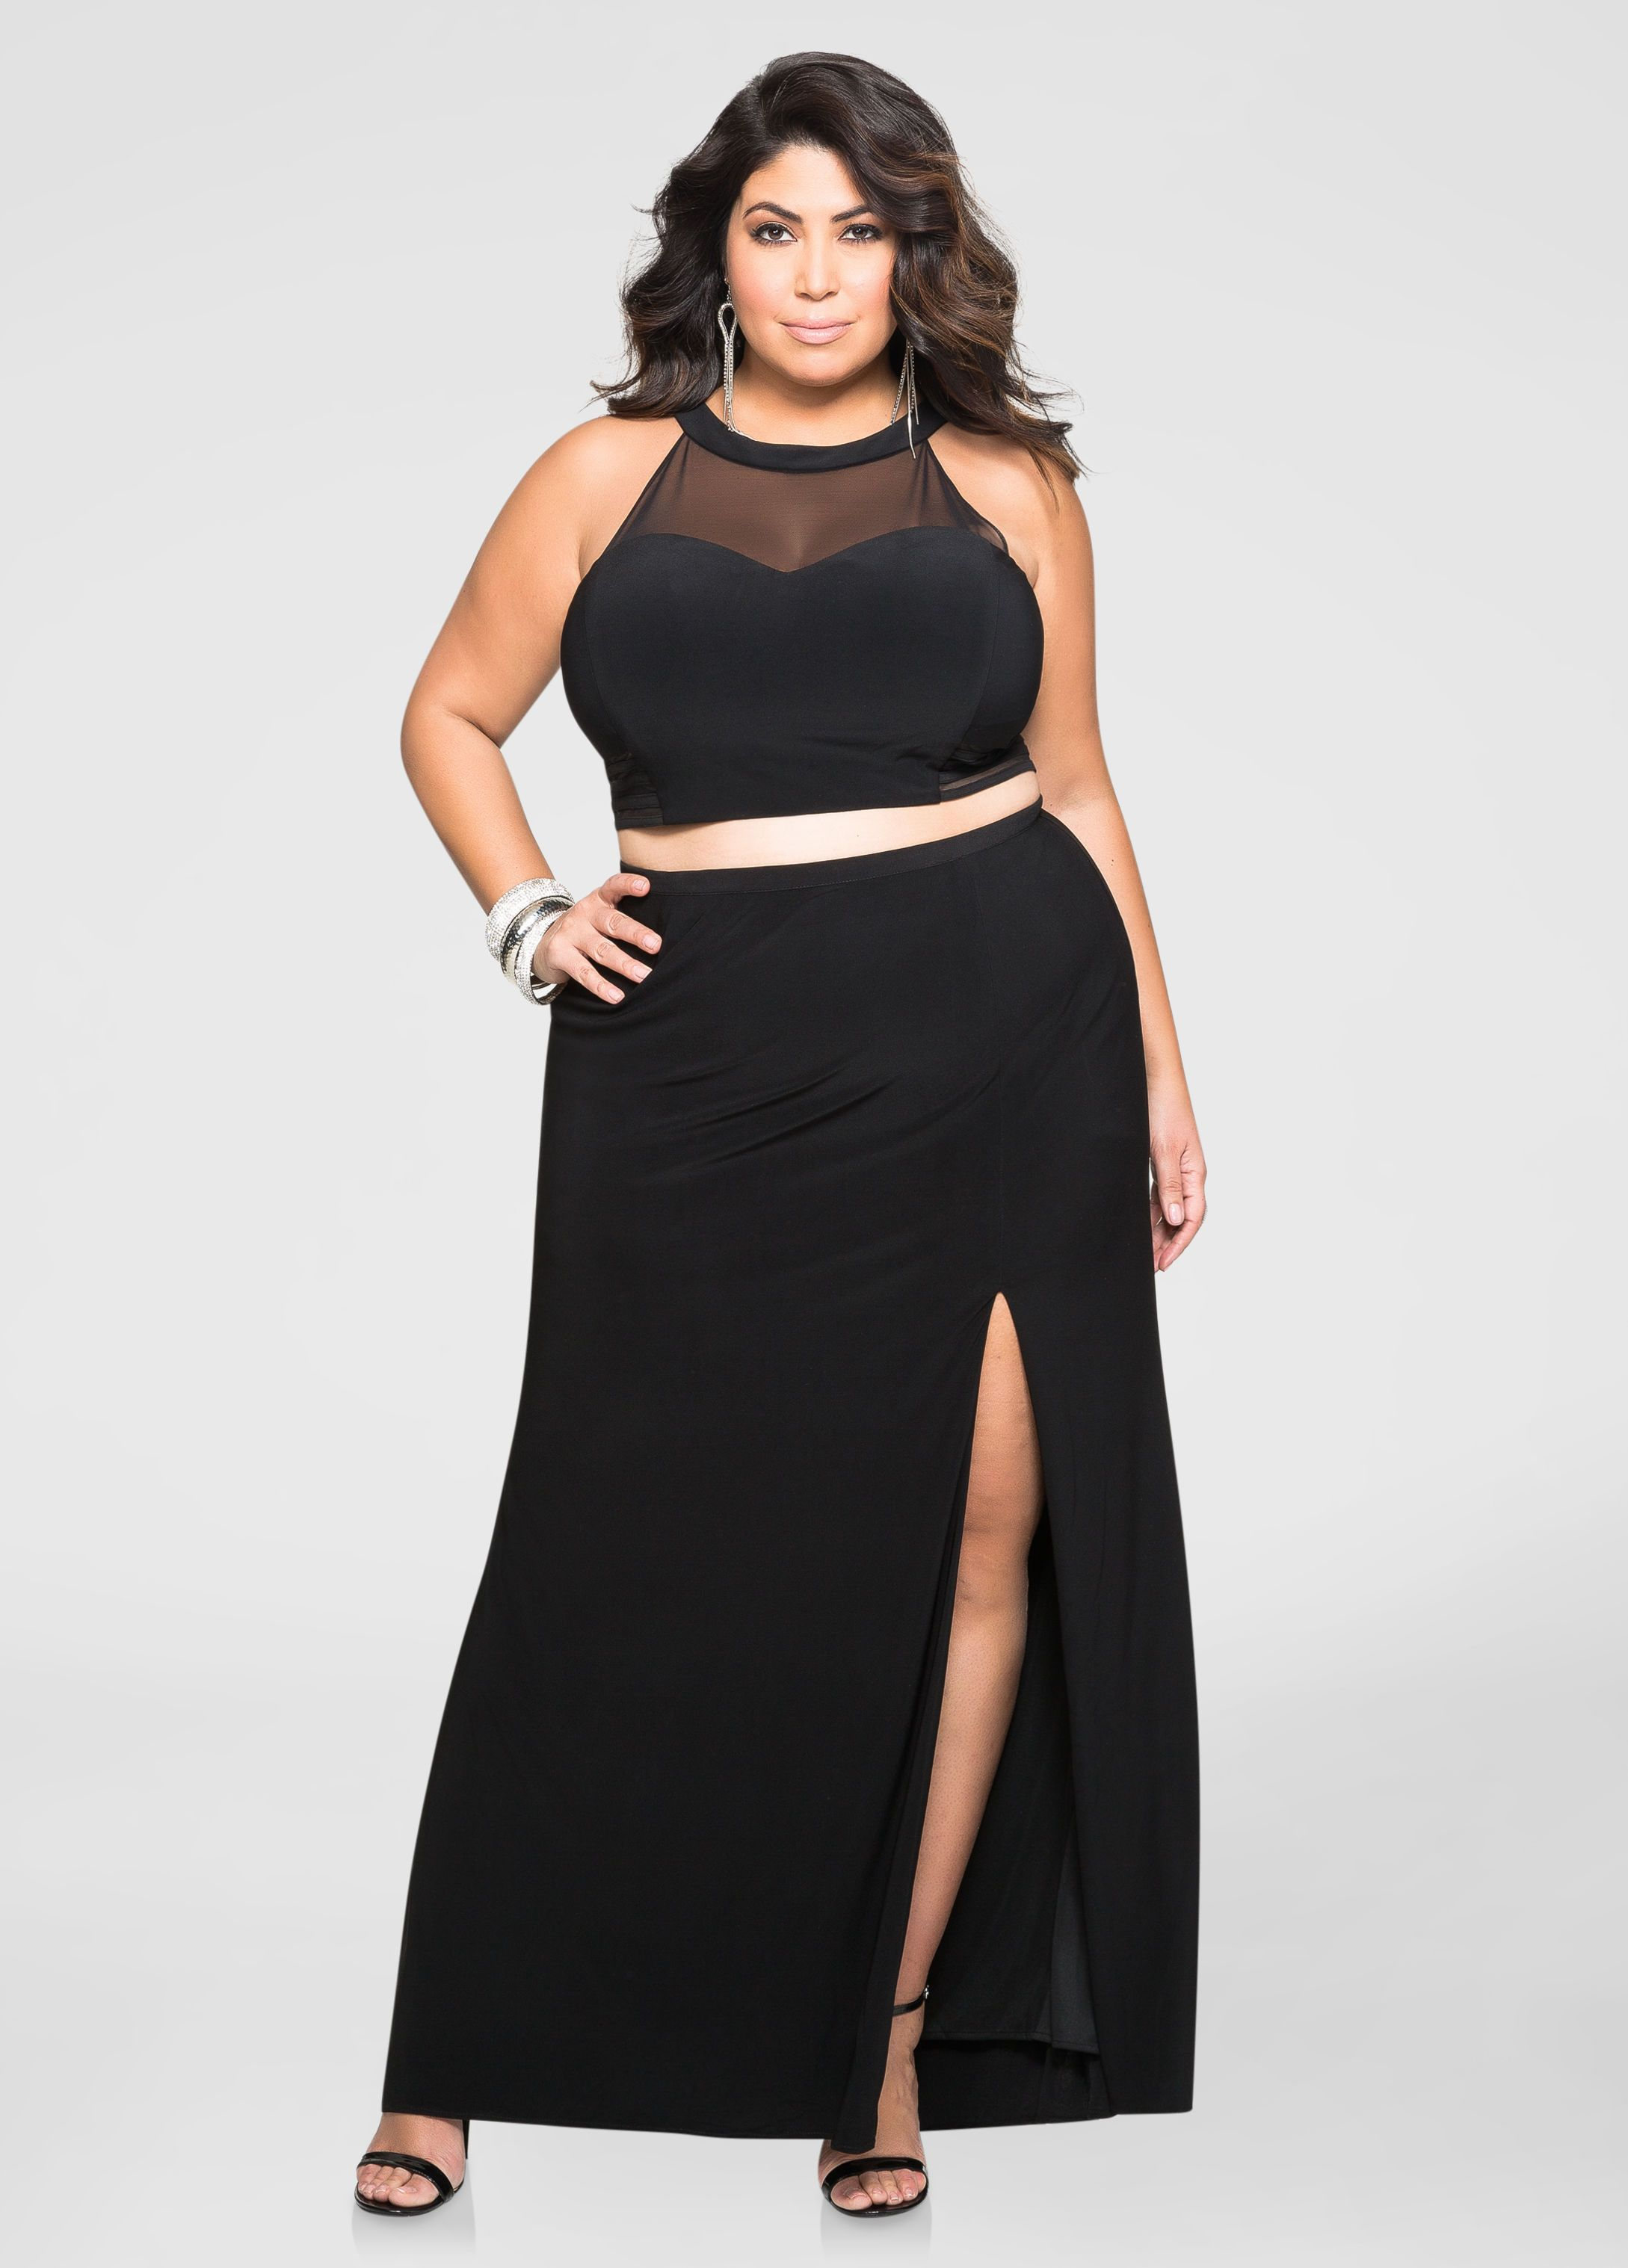 2-Piece Crop Top Gown Set | Jessica Milagros | Plus size ...